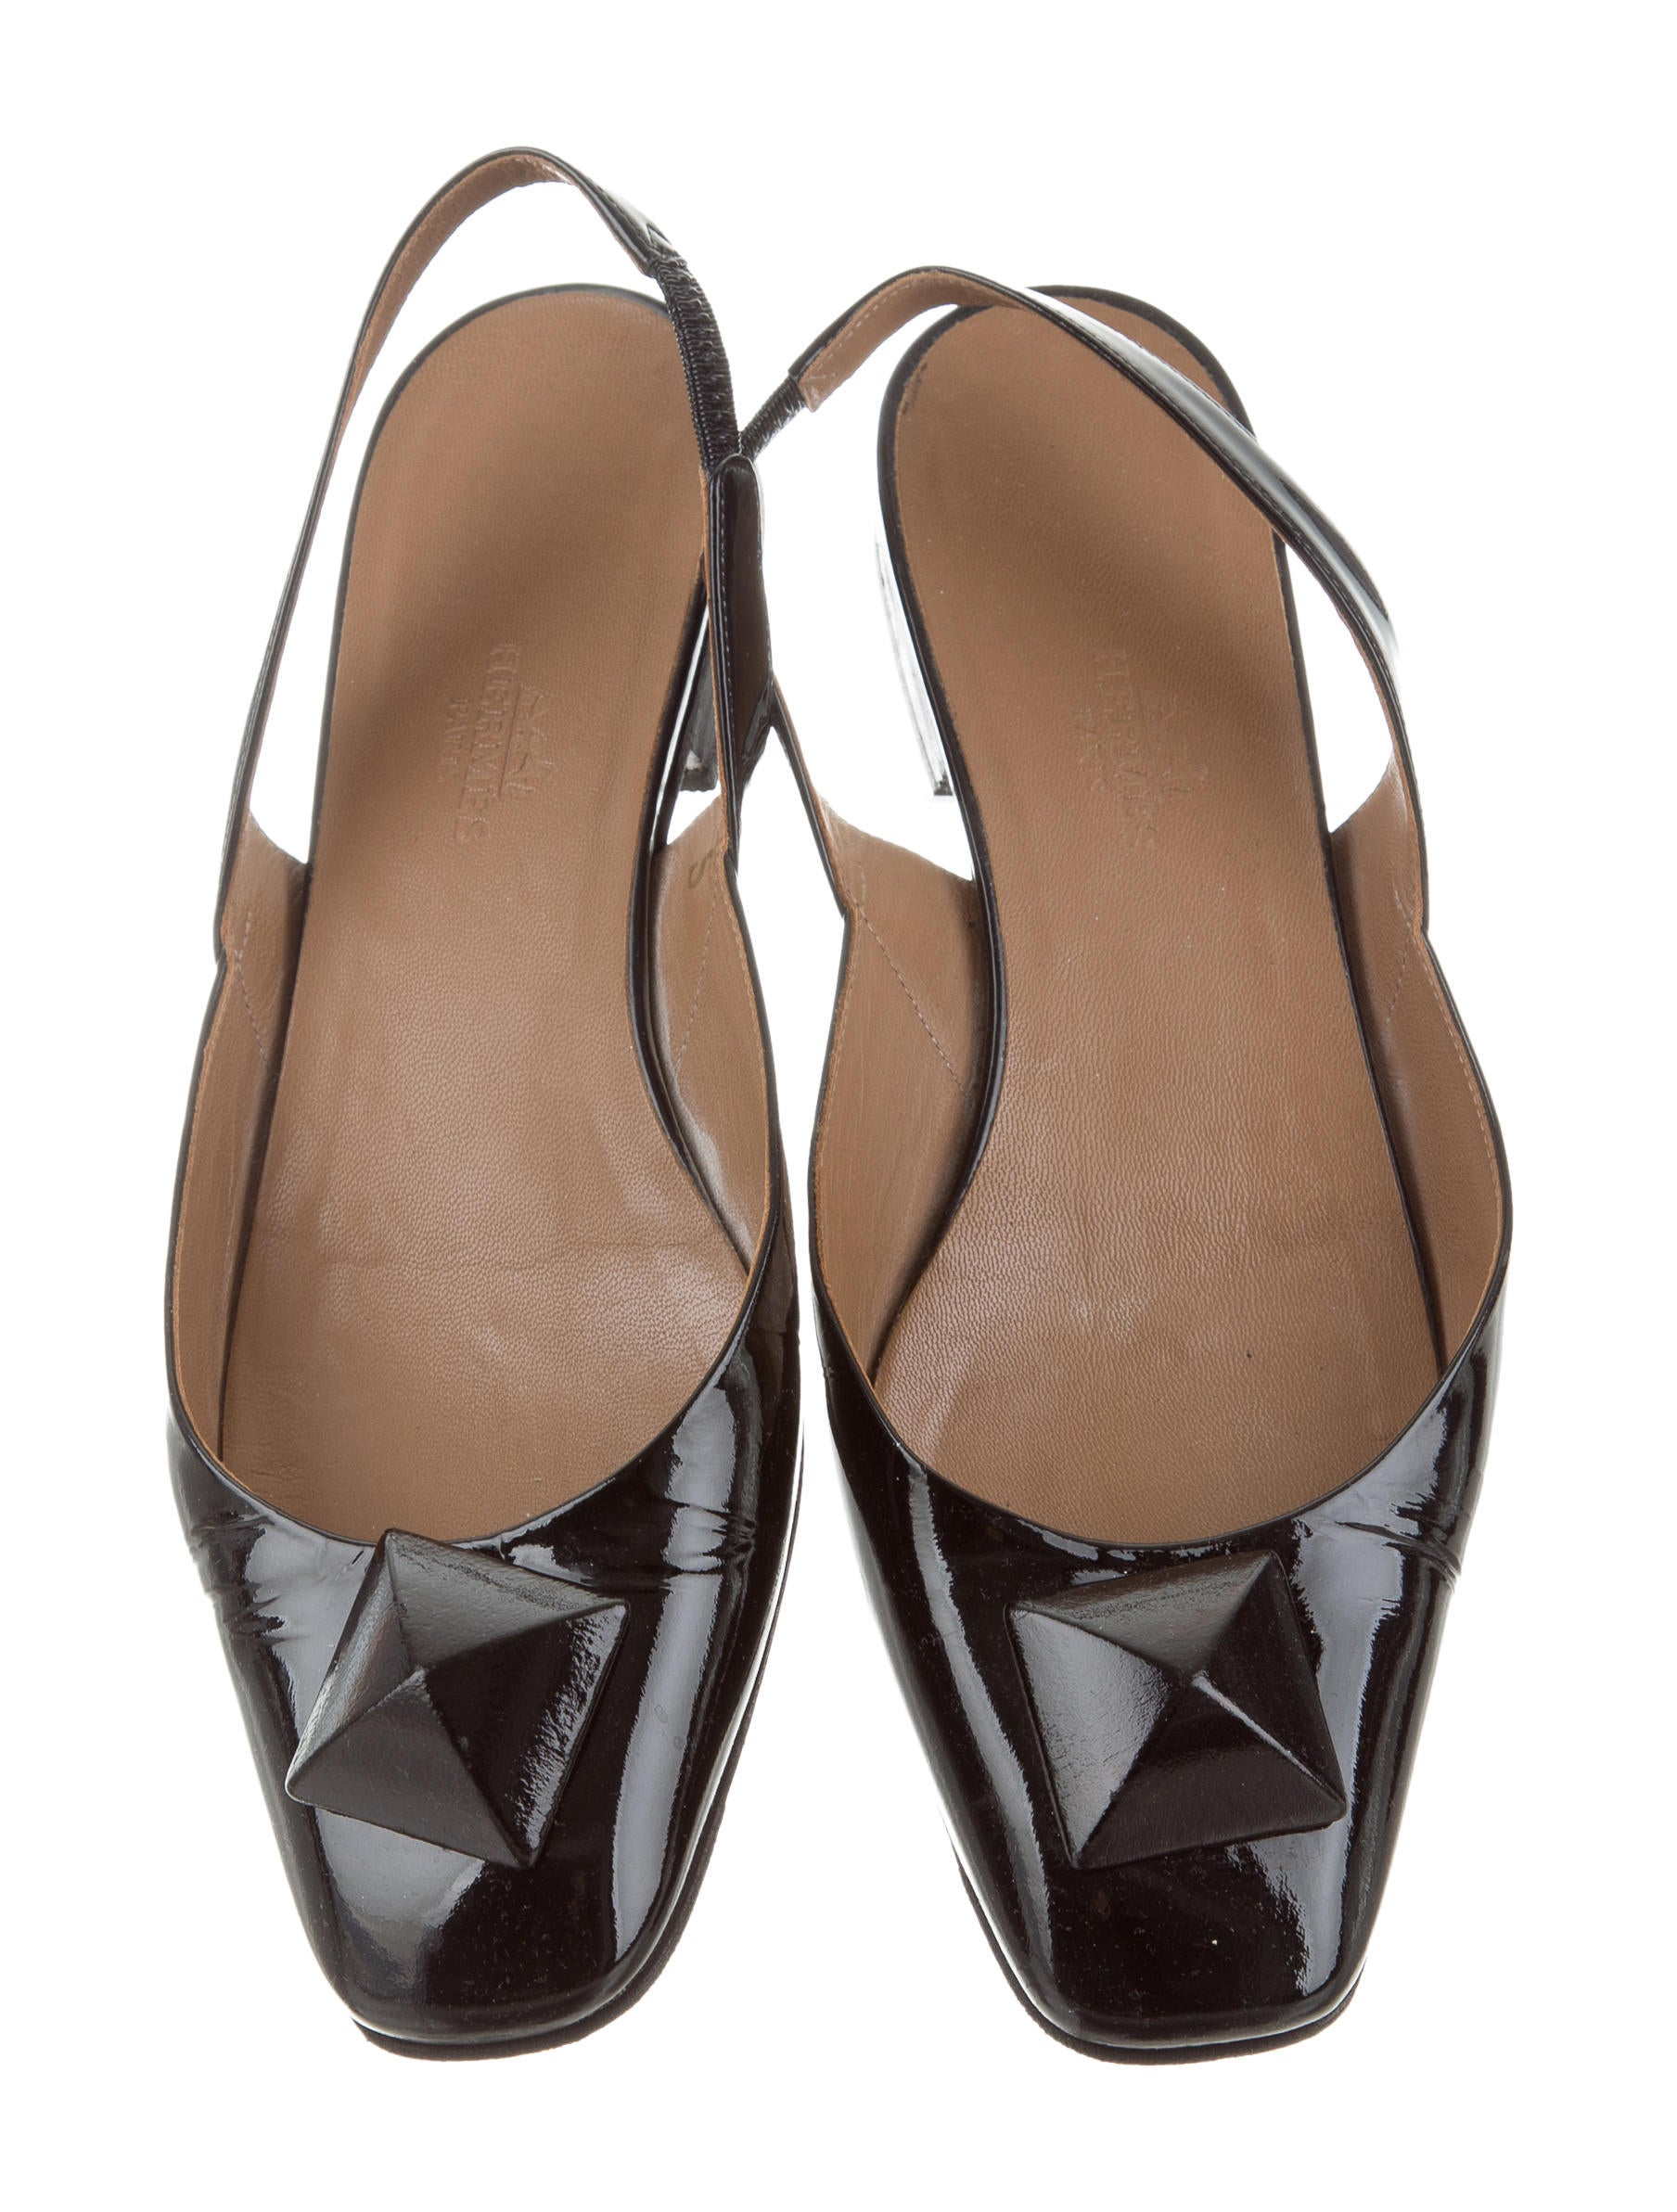 Hermès Square-Toe Slingback Flats nicekicks online pay with paypal sale for cheap AGGmofHHU